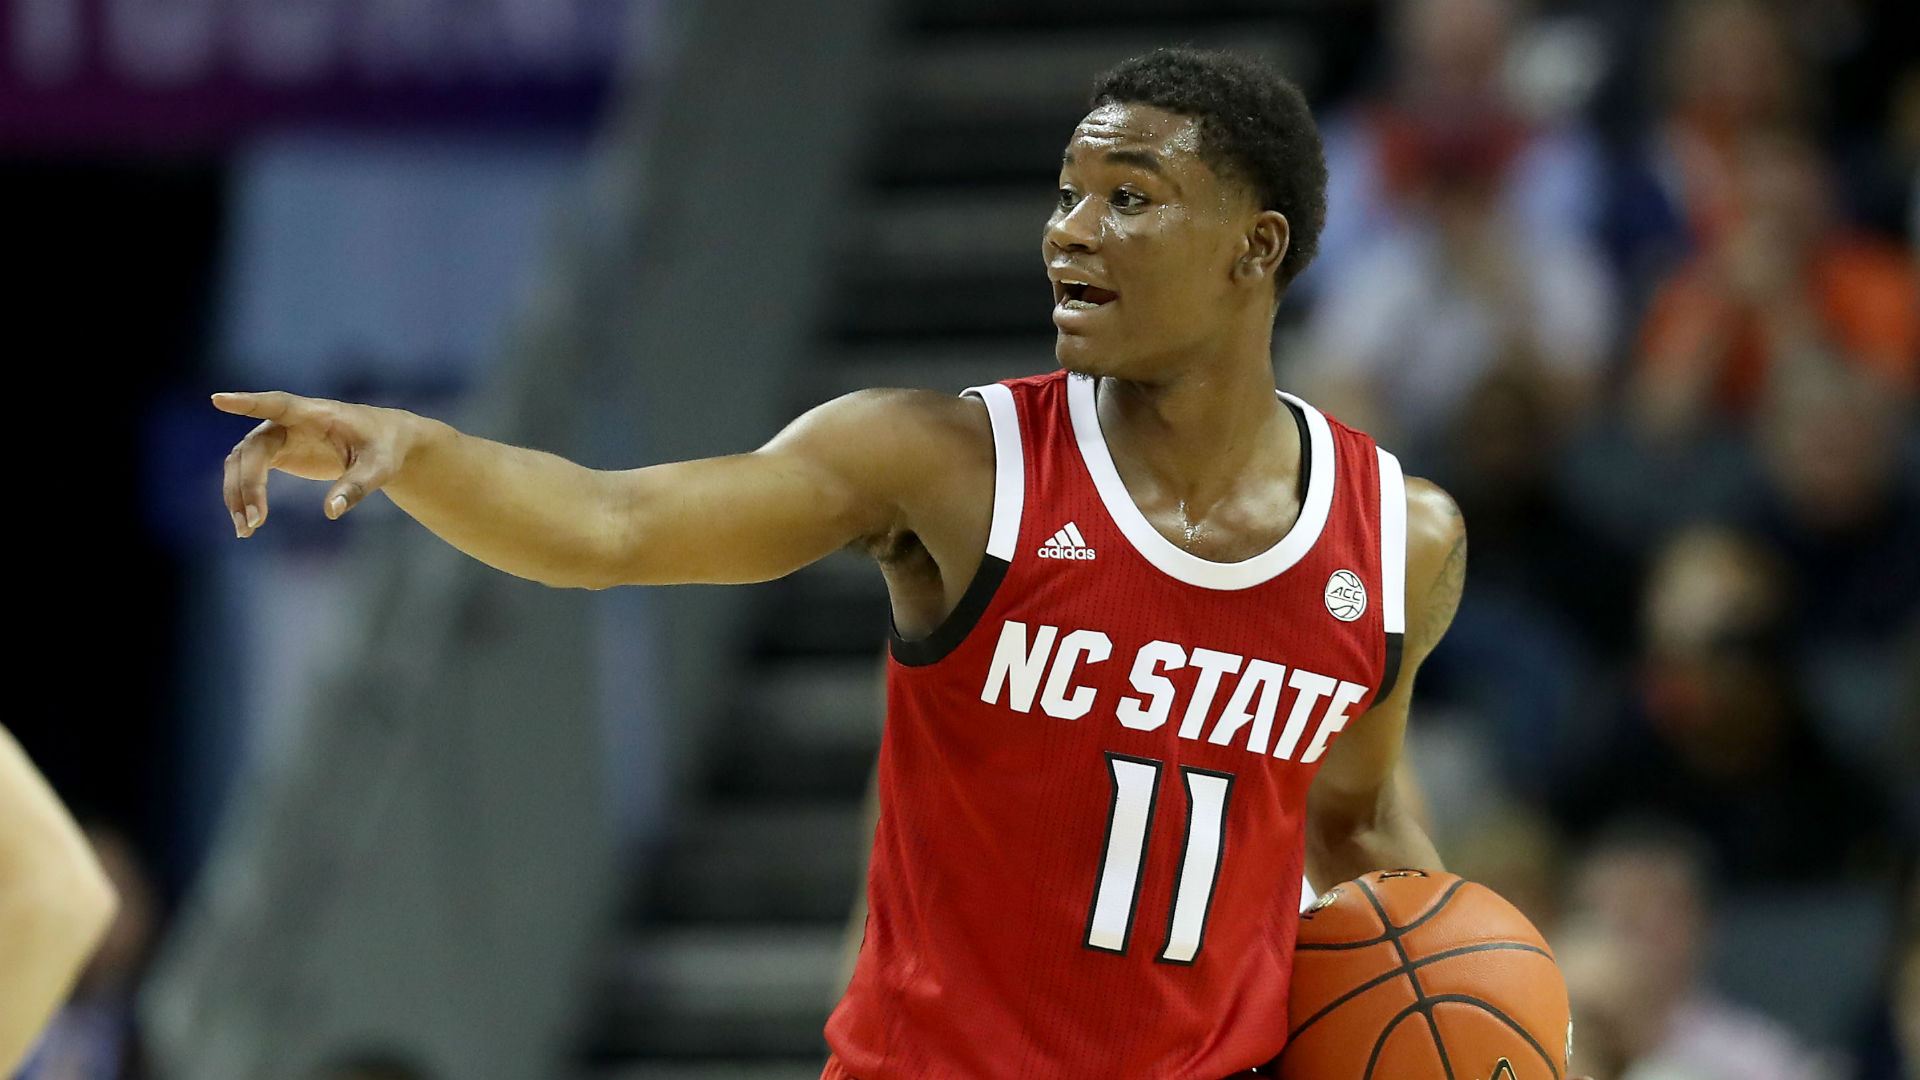 NBA Draft 2019: Markell Johnson withdraws to play senior season at NC State